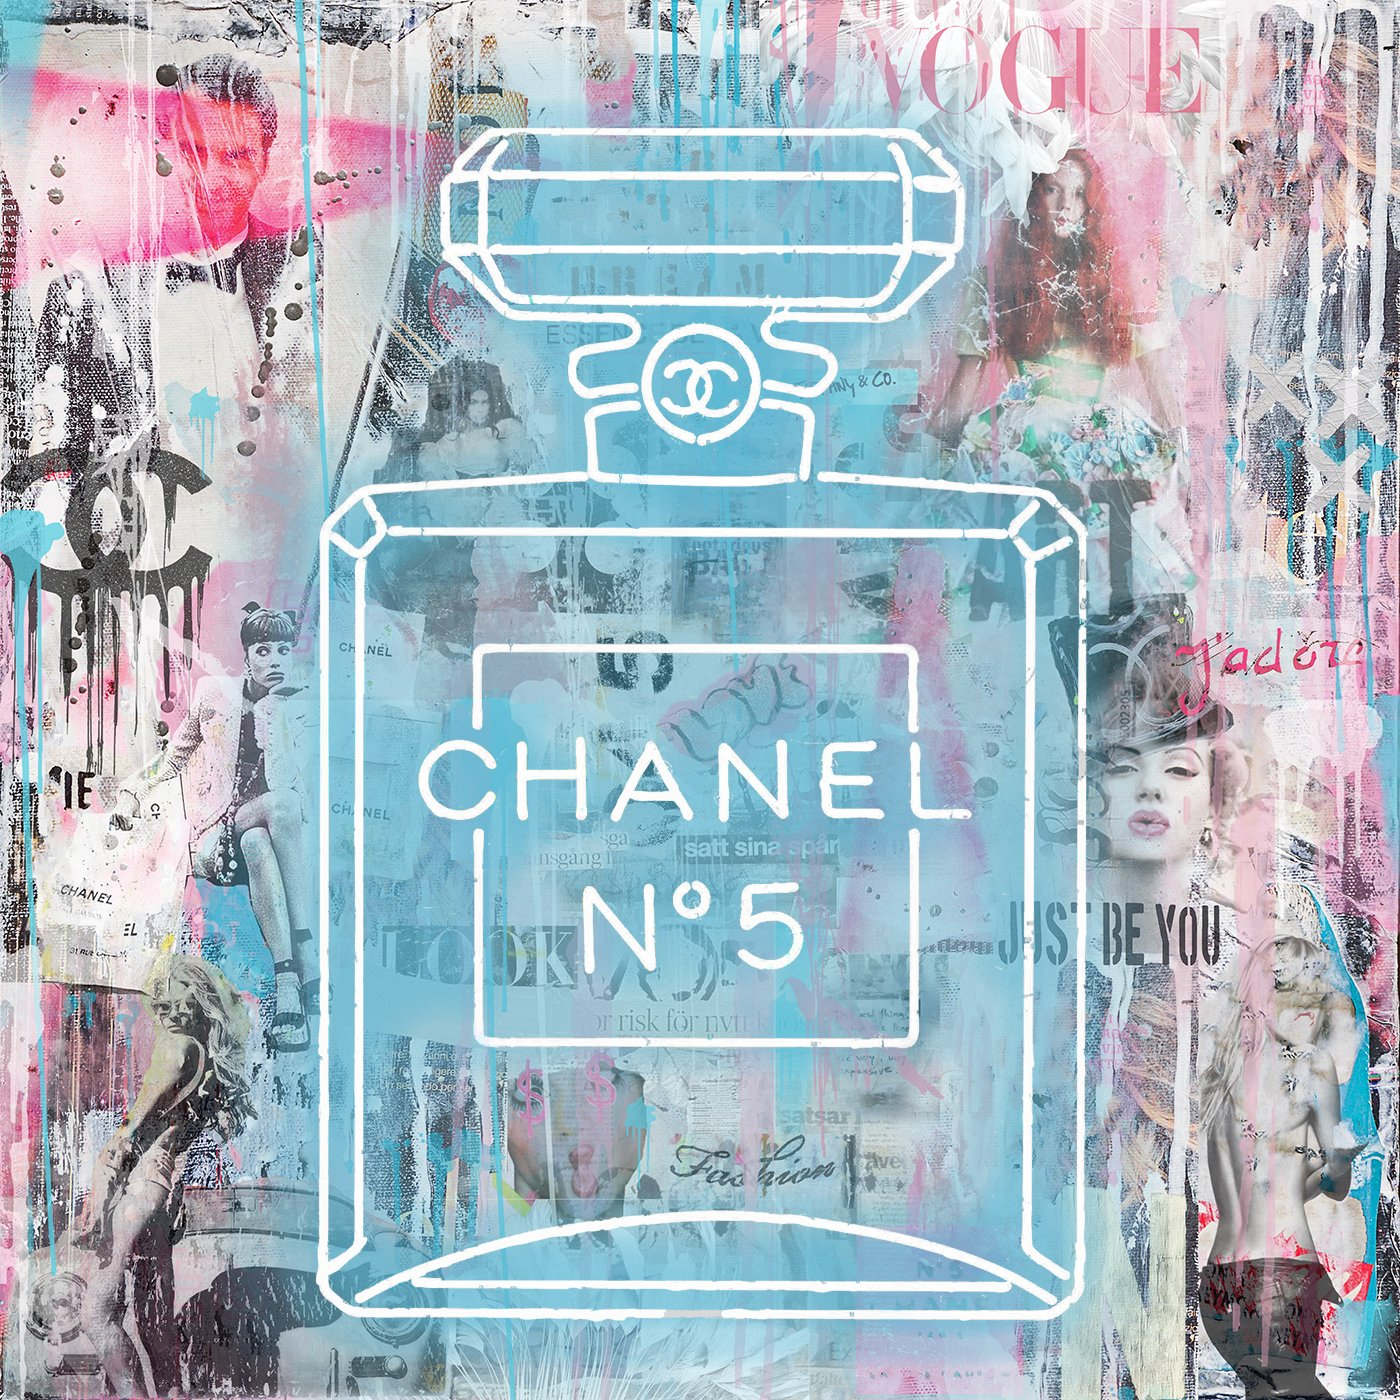 Chanel Blue Neon Lights